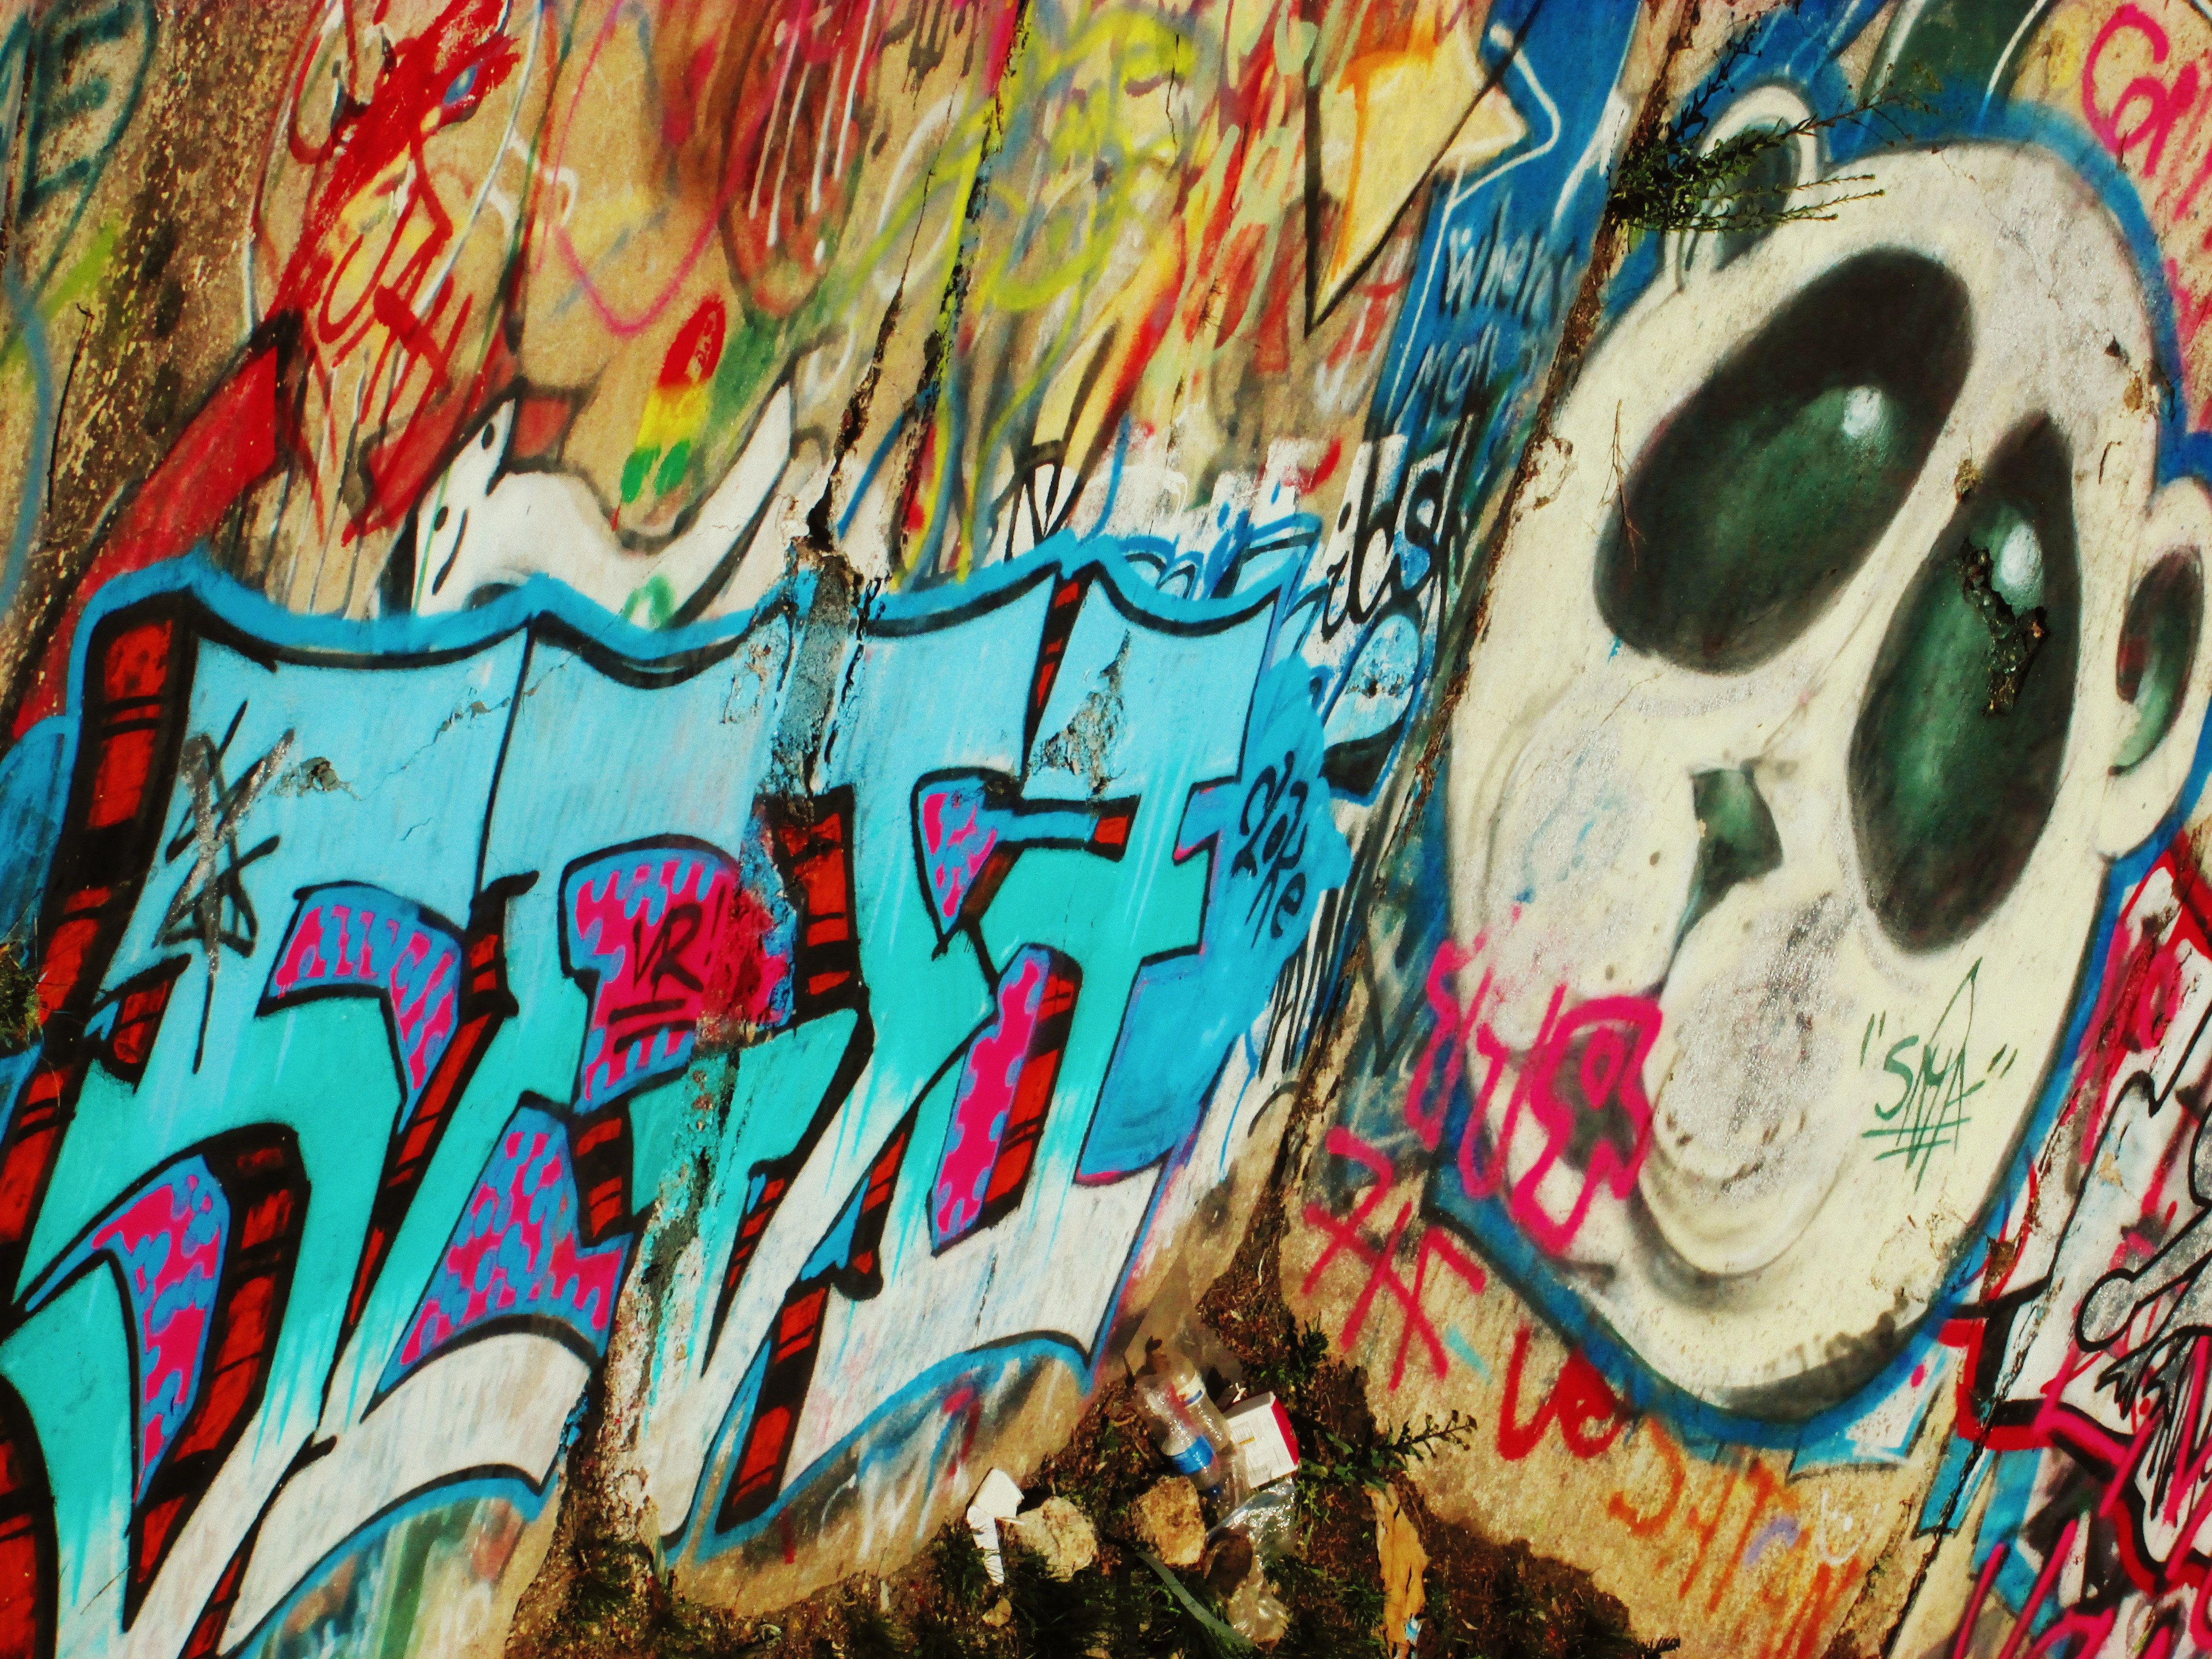 Inspiration graffiti 2 adjectives exciting passion description the bright colors draw attention